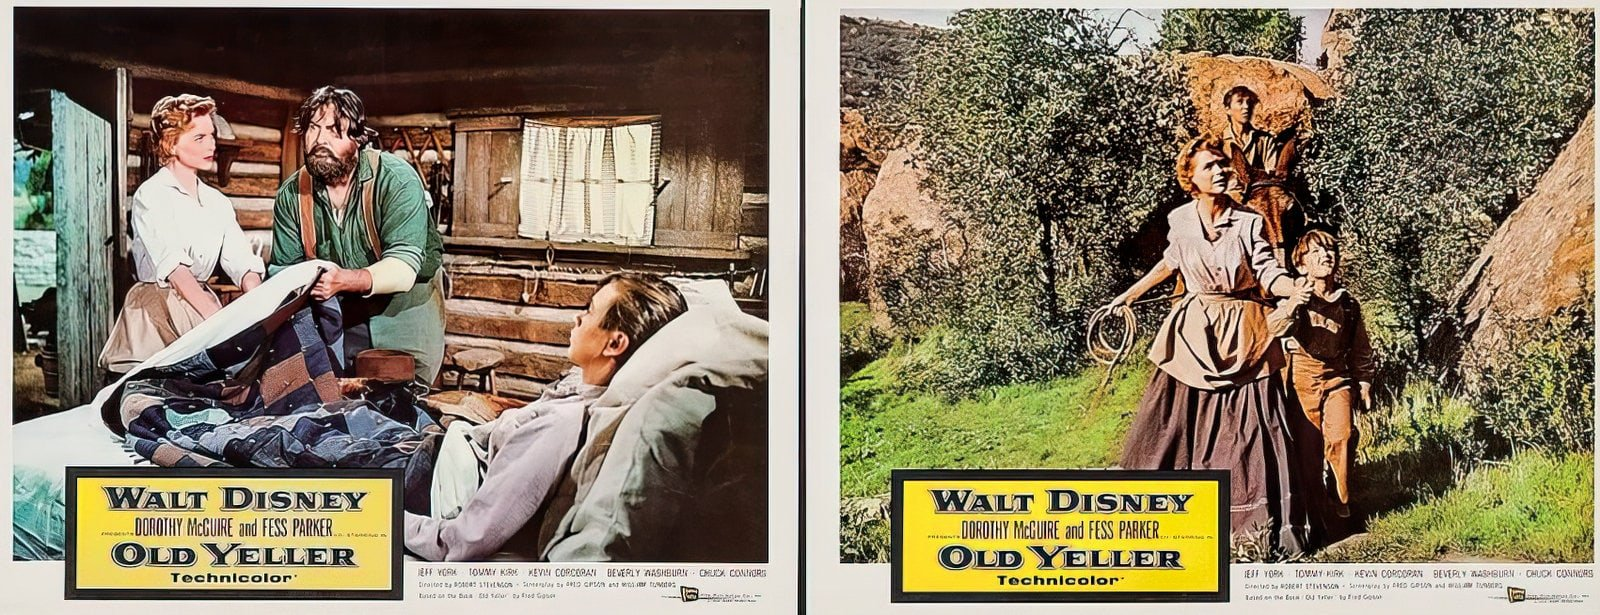 Vintage Old Yeller movie scenes from the 1950s (3)